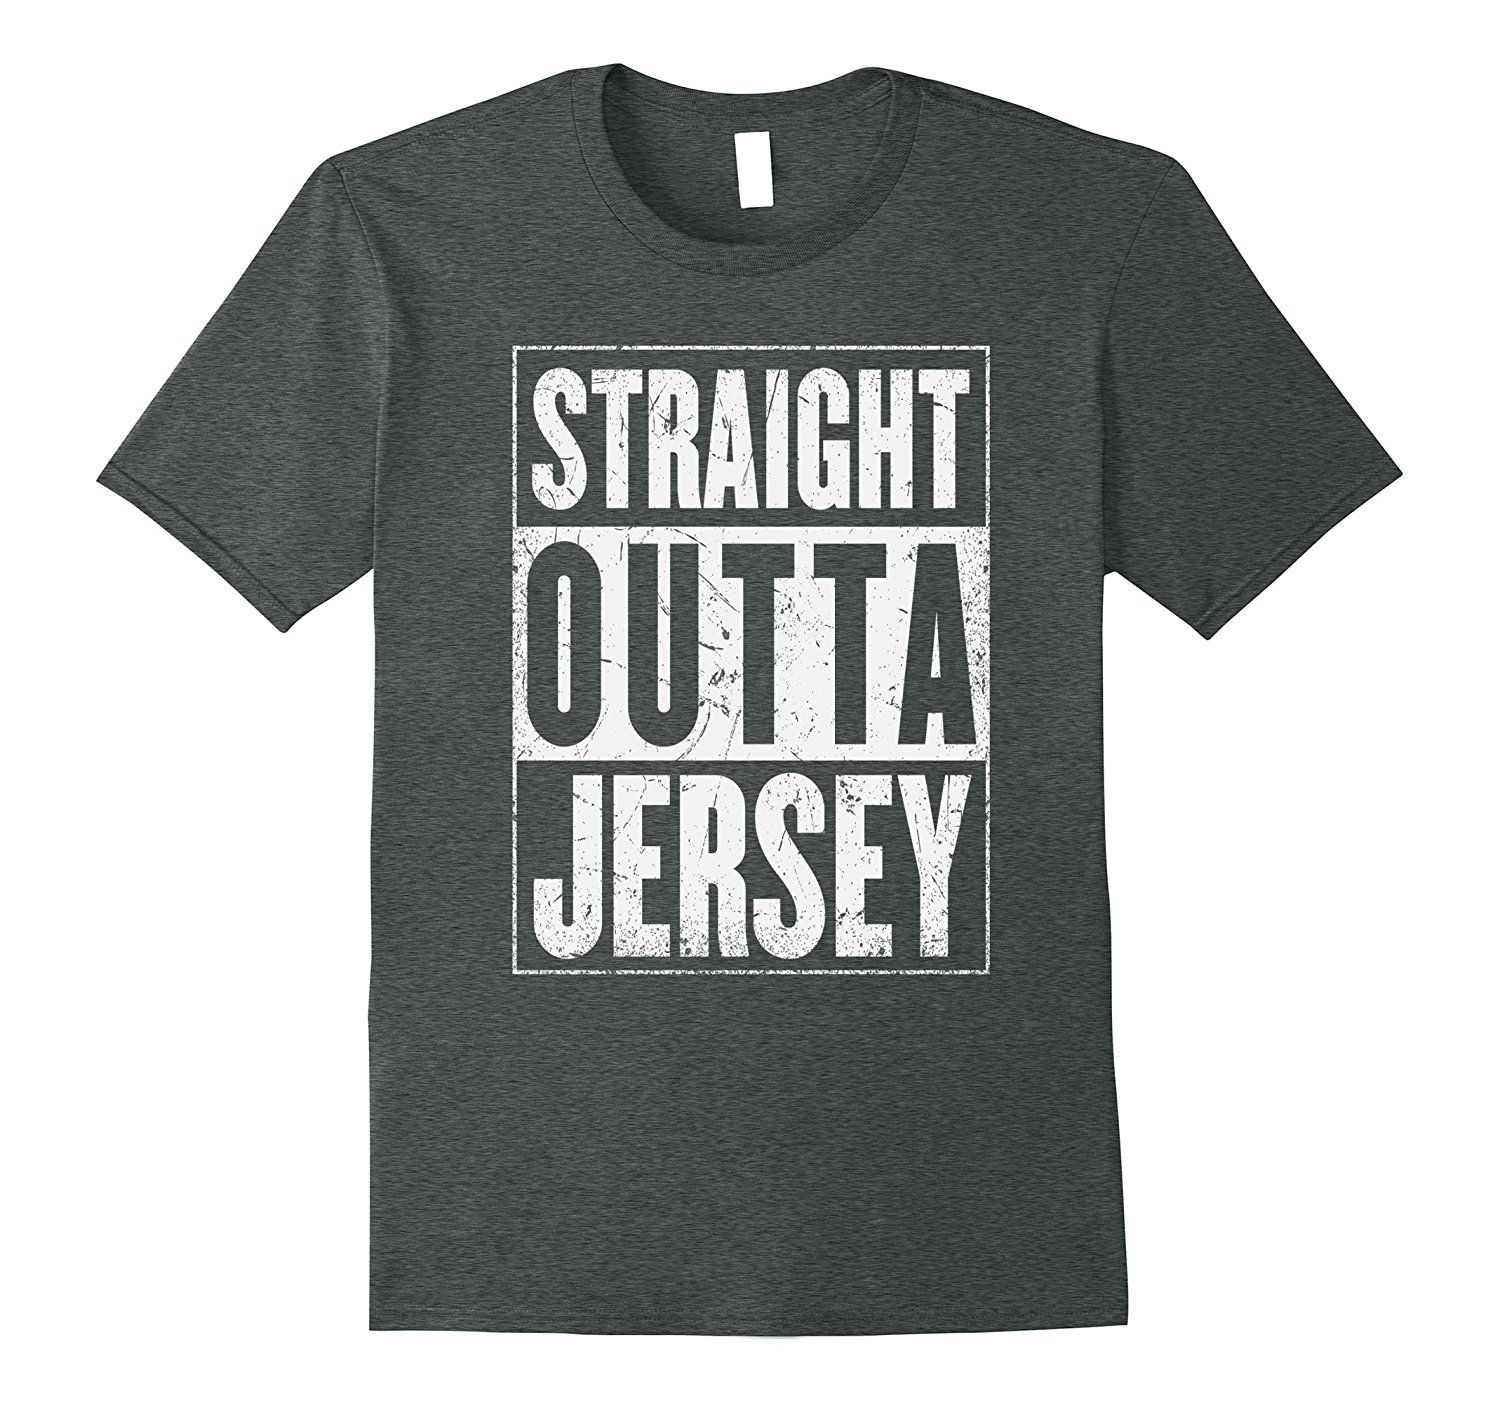 Amazon.com: Straight Outta Jersey Shirt | The Original Distressed Look: Clothing  With this Straight Outta Atlanta Shirt you'll be the talk of the town amongst Atlanta locals and Georgia state fans. Buy this awesome Straight Outta Atlanta shirt as an awesome gift for Atlanta locals, people who love Atlanta tee shirts or Georgia shirts.  Buying gifts for Atlanta fans is hard. Straight Outta memes have become an extremely popular gift for husbands, gift for wives or gift for fathers from…